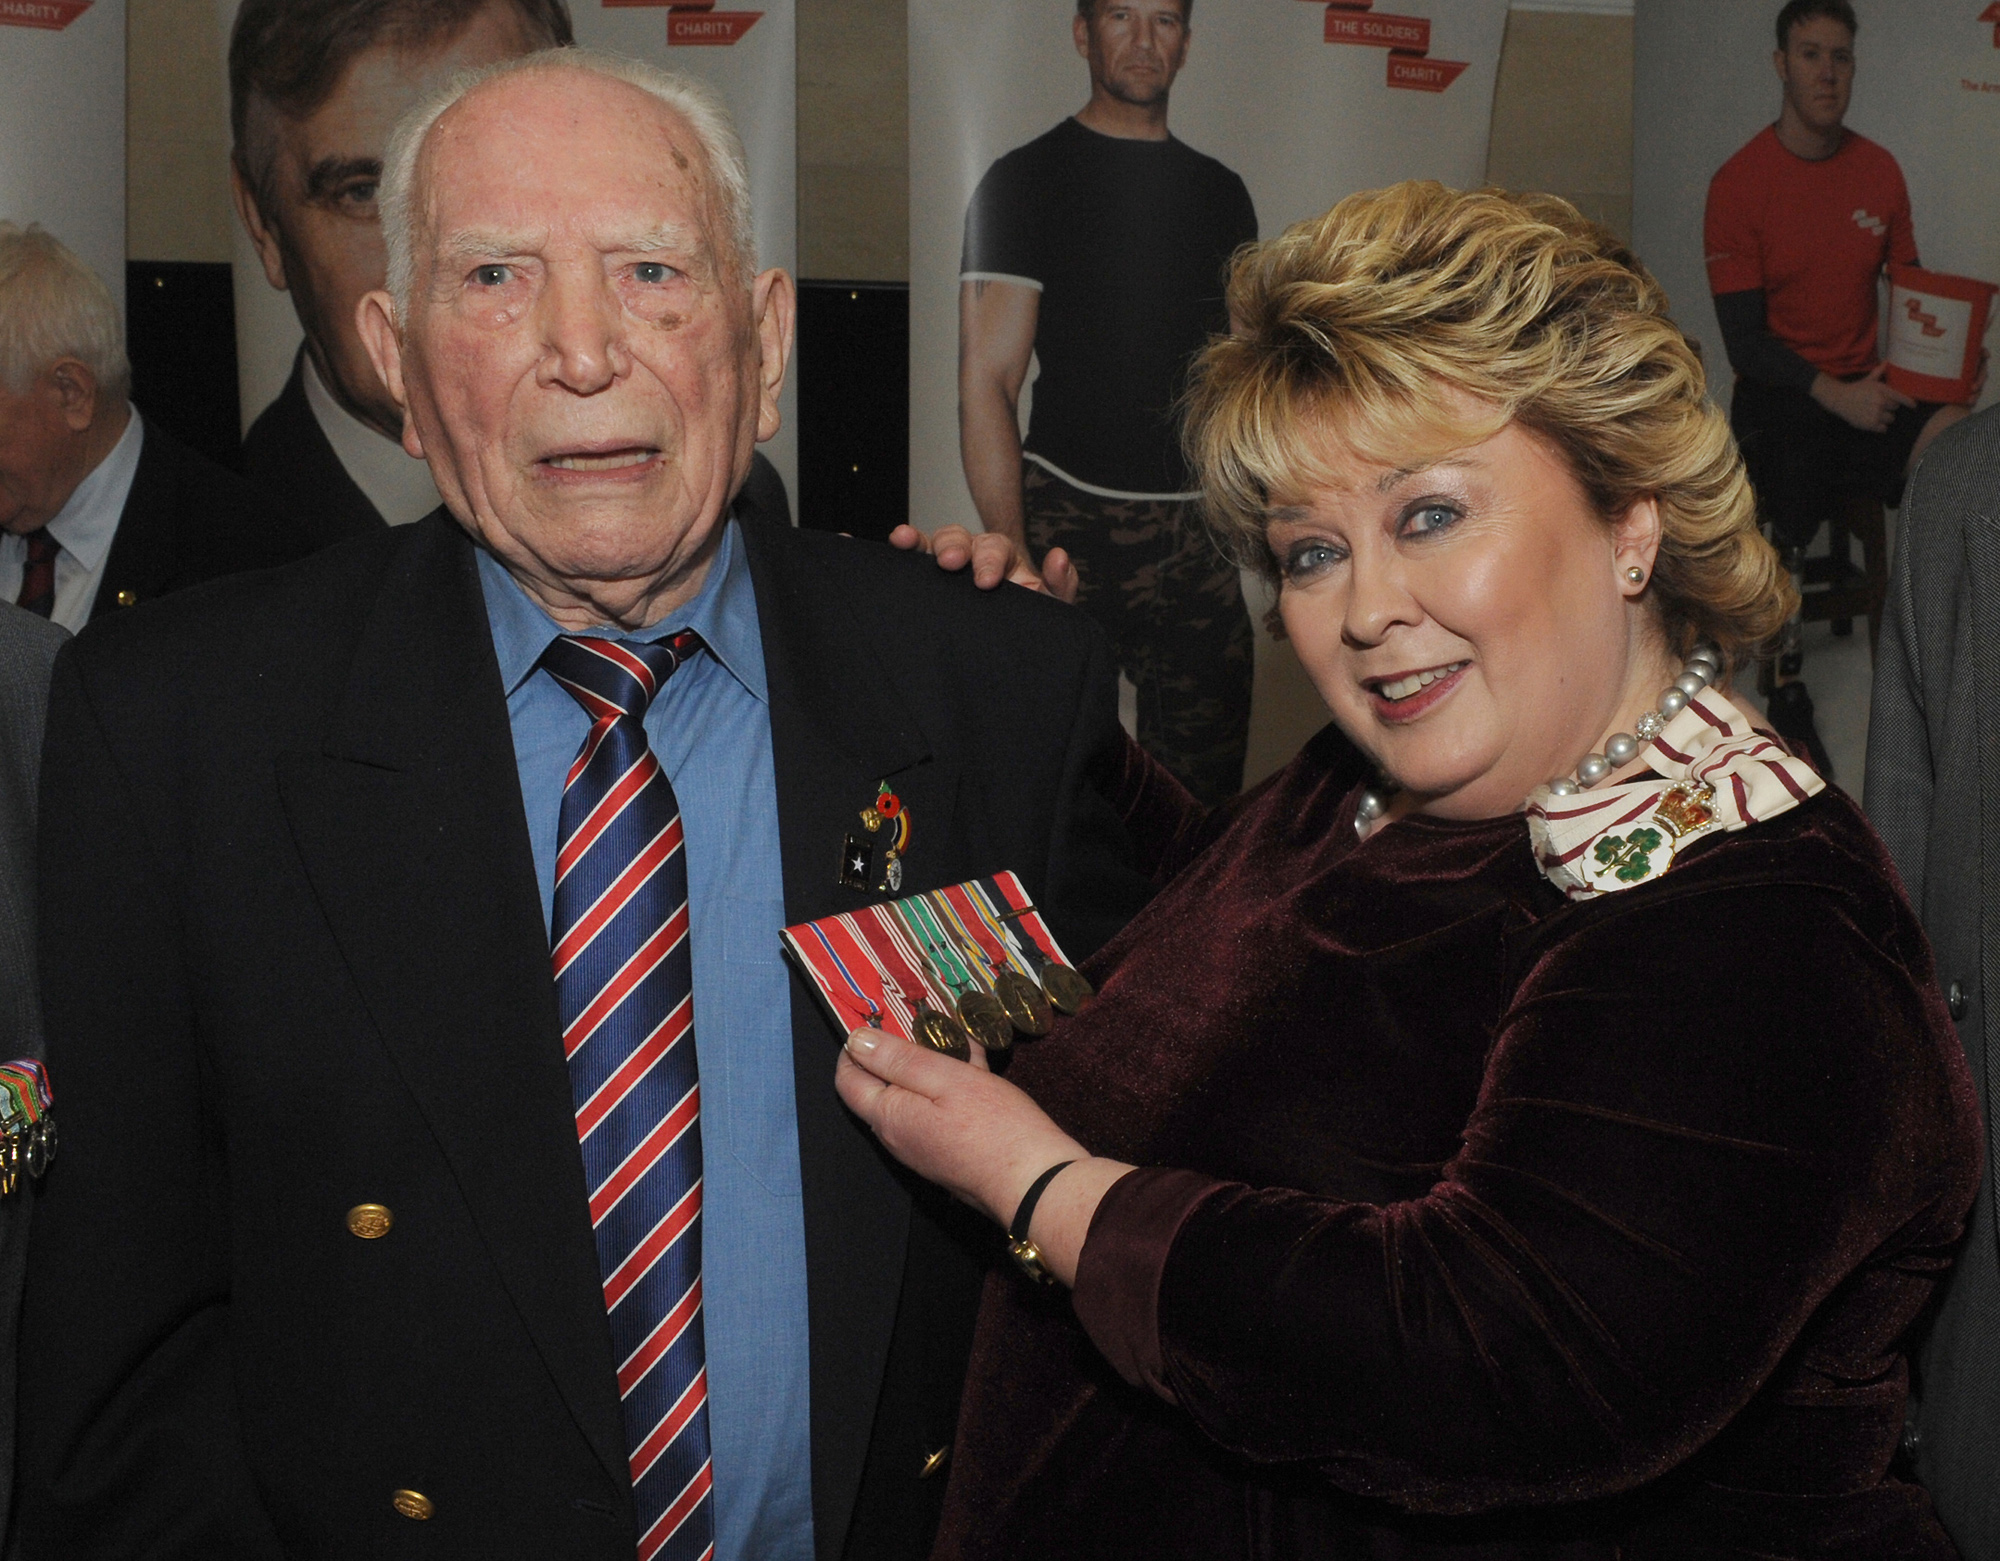 Fionnuala Jay-O'Boyle CBE (Lord Lieutenant of the County Borough of Belfast) pictured taking a close look at the medals of WW2 veteran Teddy Dixon at the WW2 Commemoration Concert 'Ulster at War' at the Waterfront Hall on Saturday 24th March. Teddy served with the US Army's 42nd Rainbow Division, 222nd Regiment Fox Company.